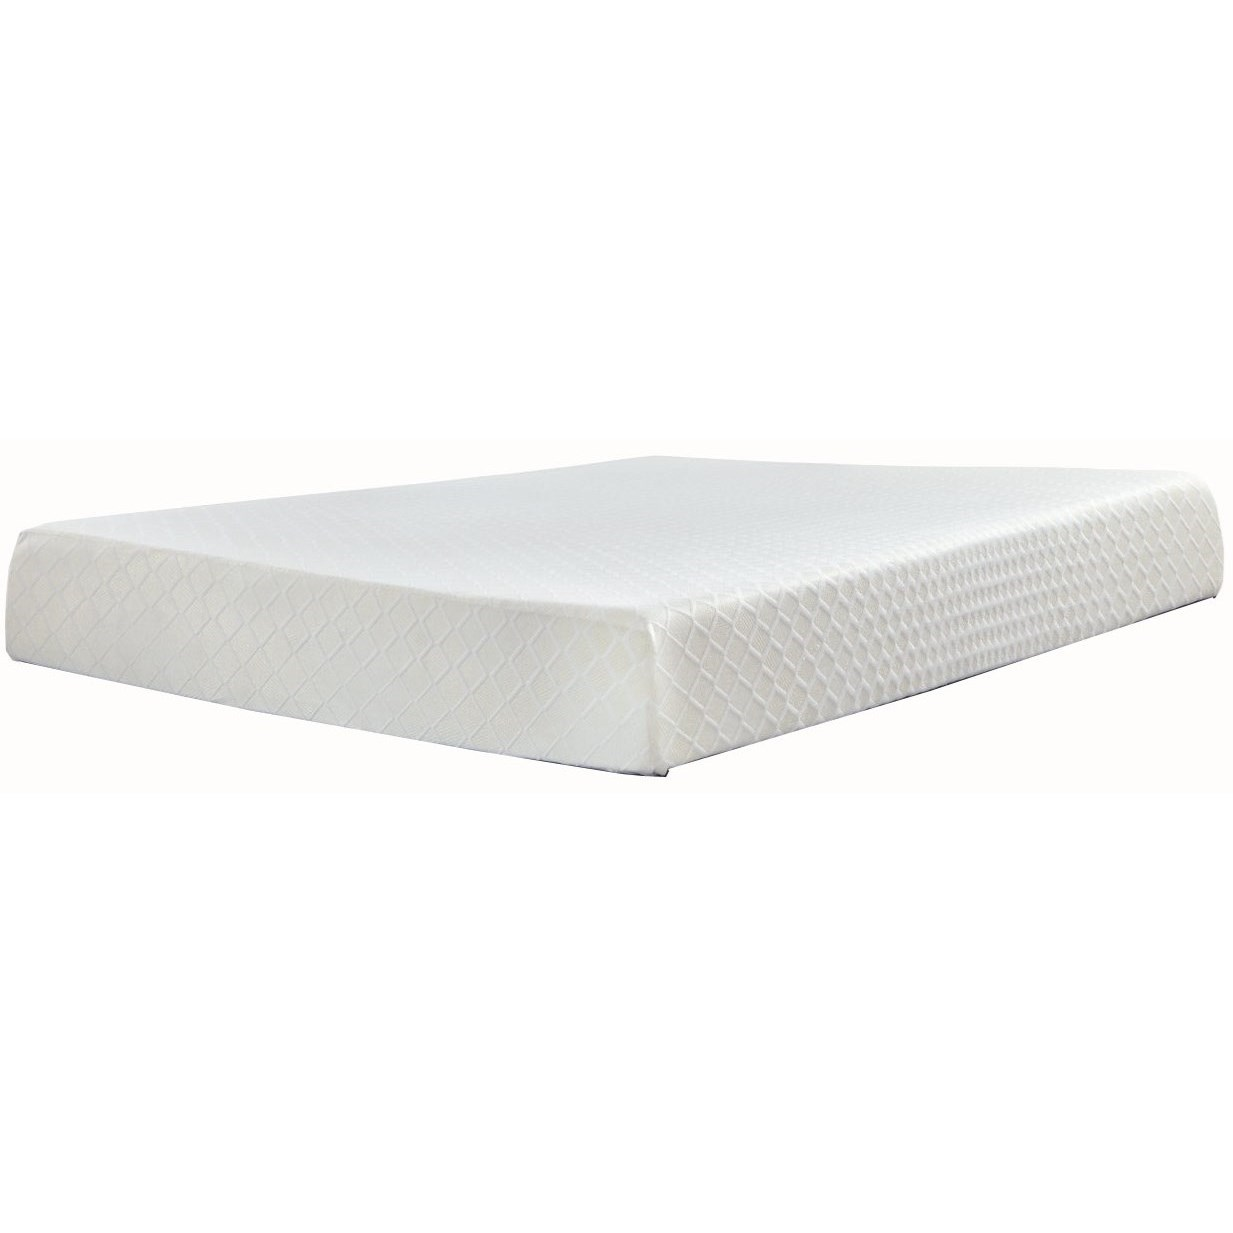 "Queen 10"" Memory Foam Mattress"